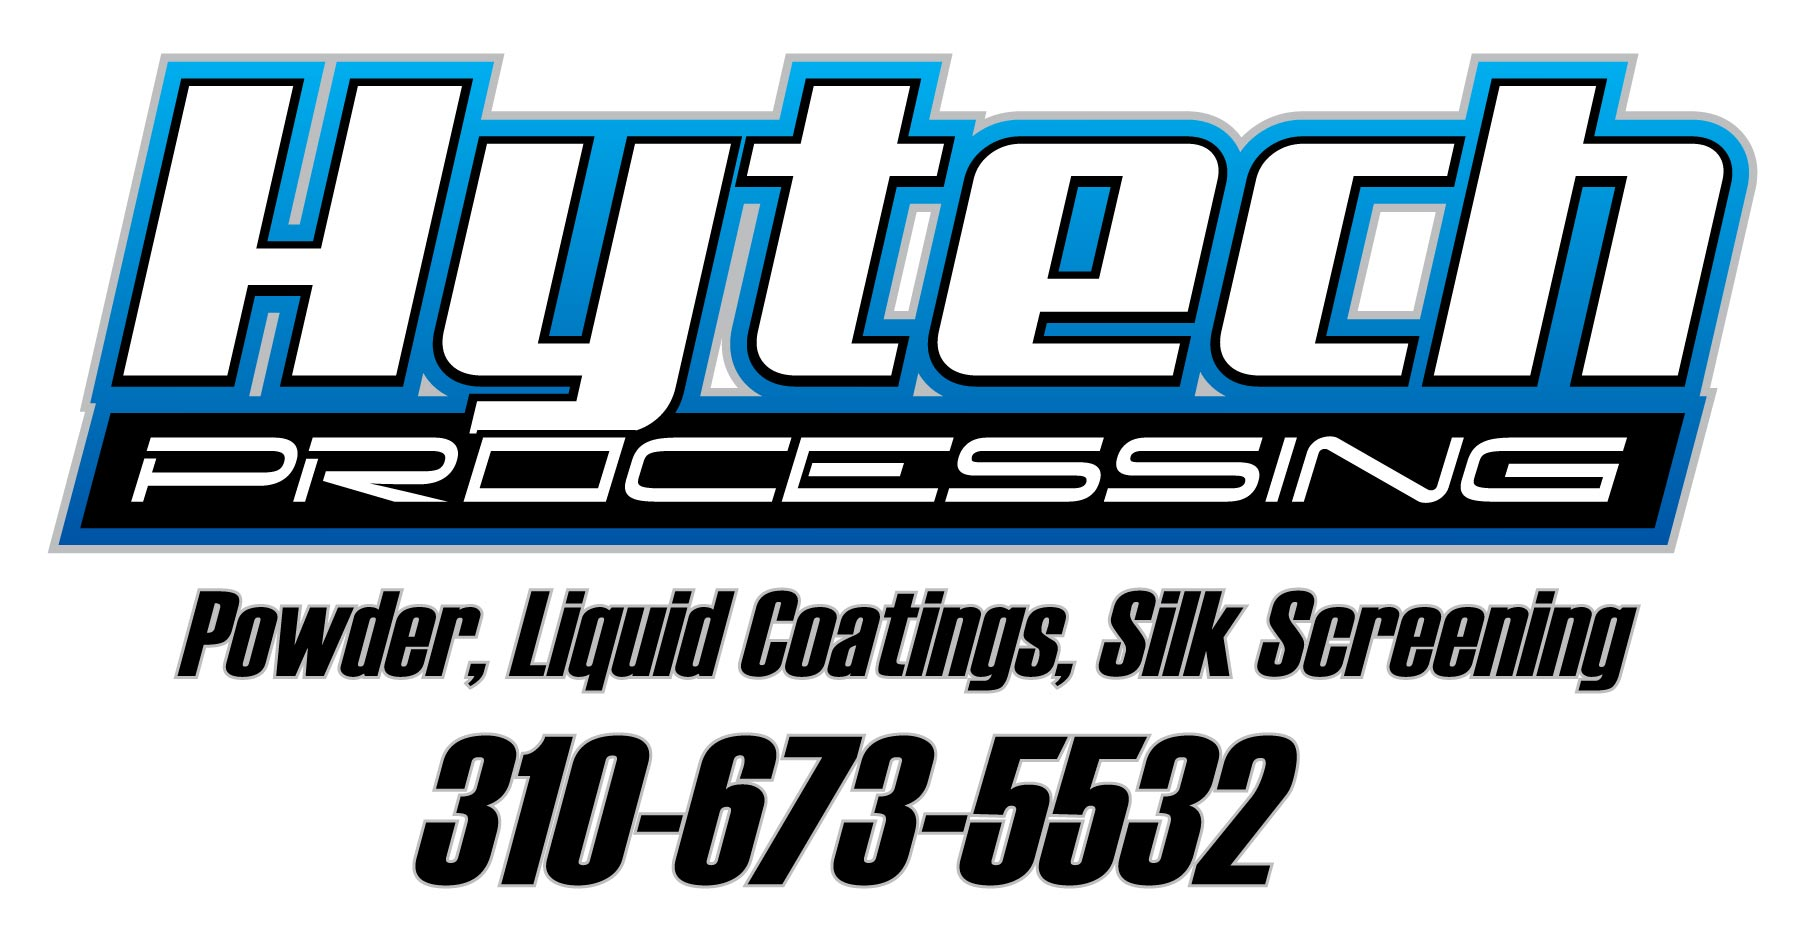 Made-in-California-manufacturer-Hytech-logo.jpg